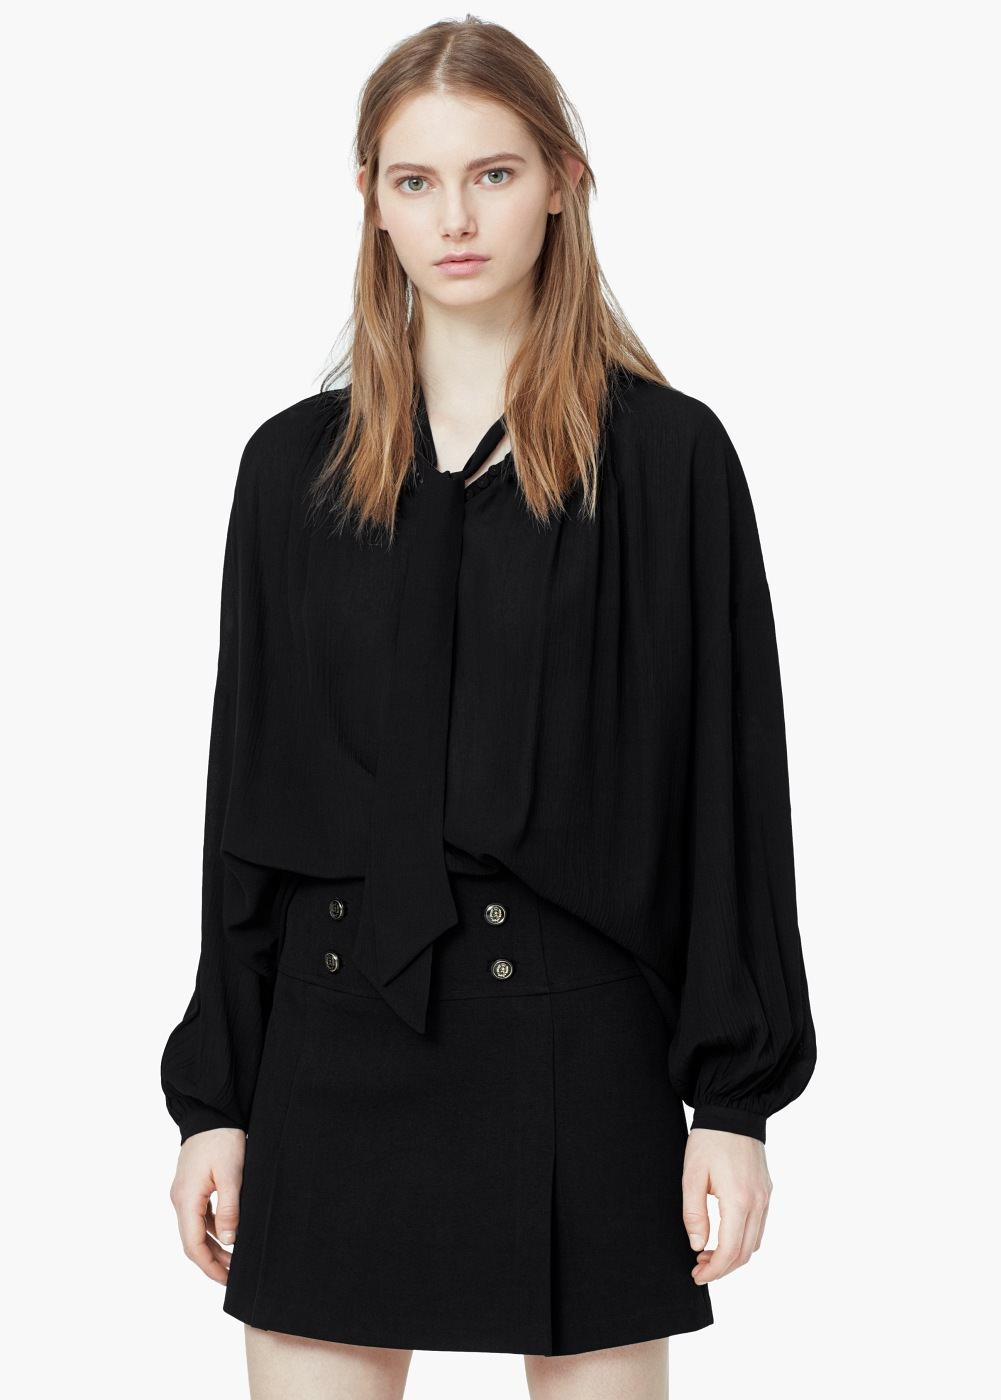 Up to 70% Off Sale Items @ Mango